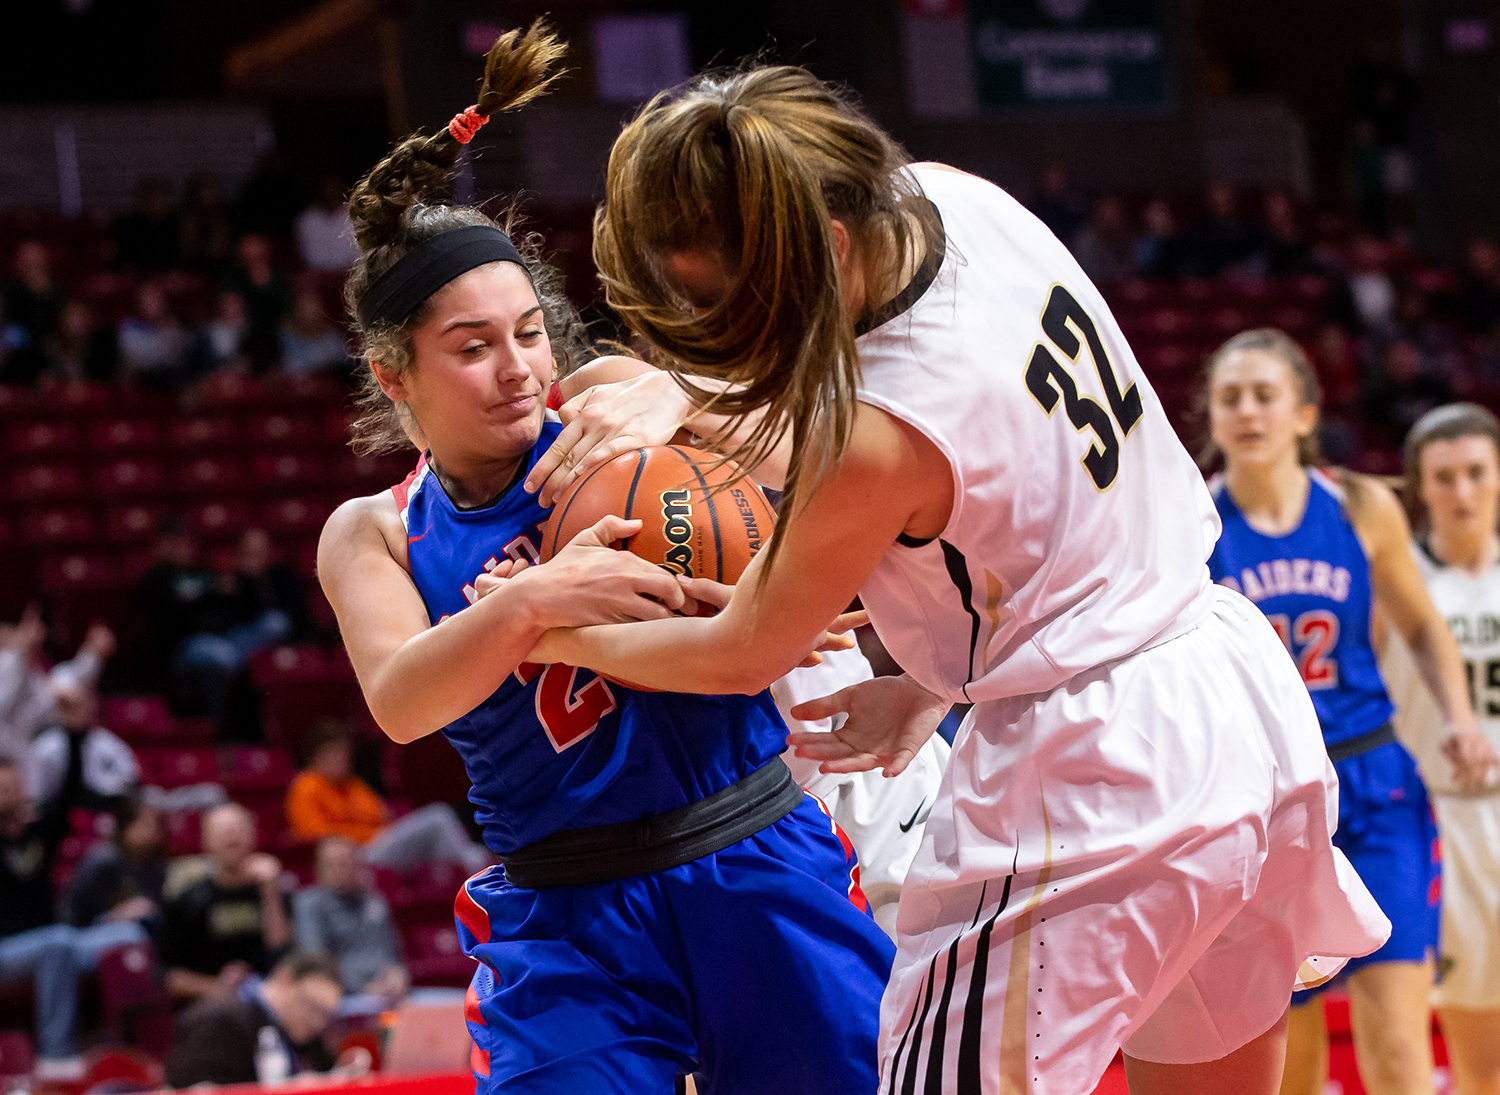 Glen Ellyn Glenbard South's Cat Karr (20) fights for possession of the ball against Sacred Heart-Griffin's Maddie Manker (32) in the fourth quarter during the IHSA Class 3A State Tournament semifinals at Redbird Arena, Friday, March 1, 2019, in Normal, Ill. [Justin L. Fowler/The State Journal-Register]